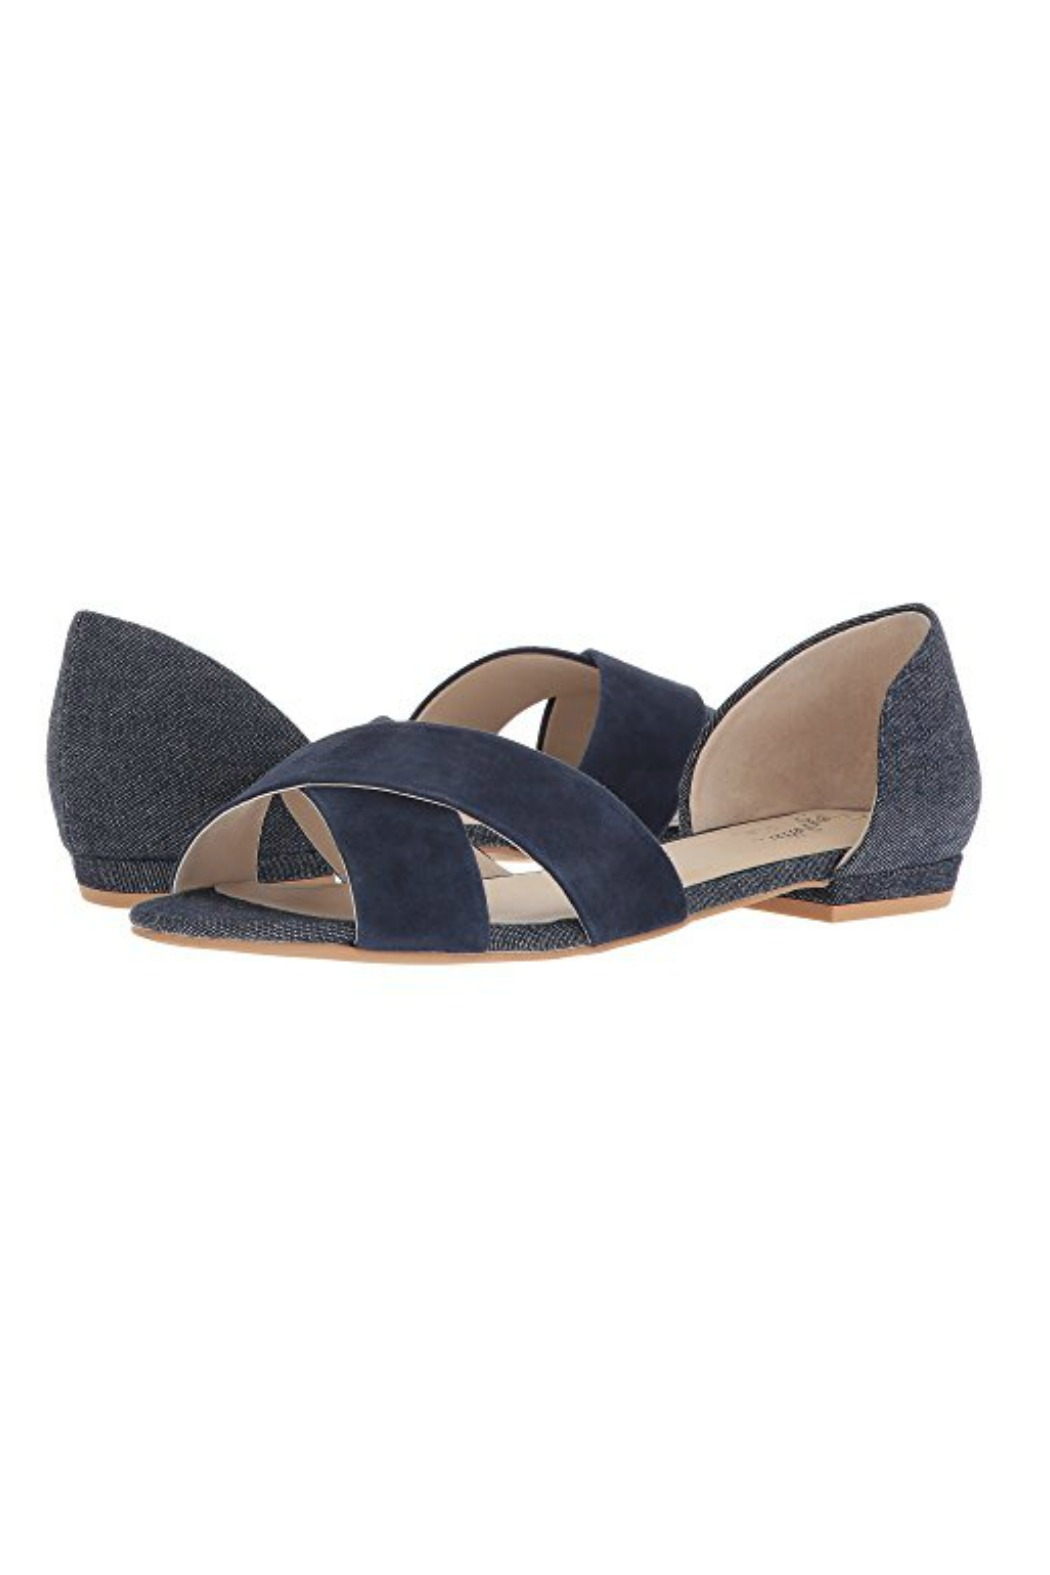 aec1005987 Seychelles Shoes Slow Down Navy Suede Sandal - Front Cropped Image